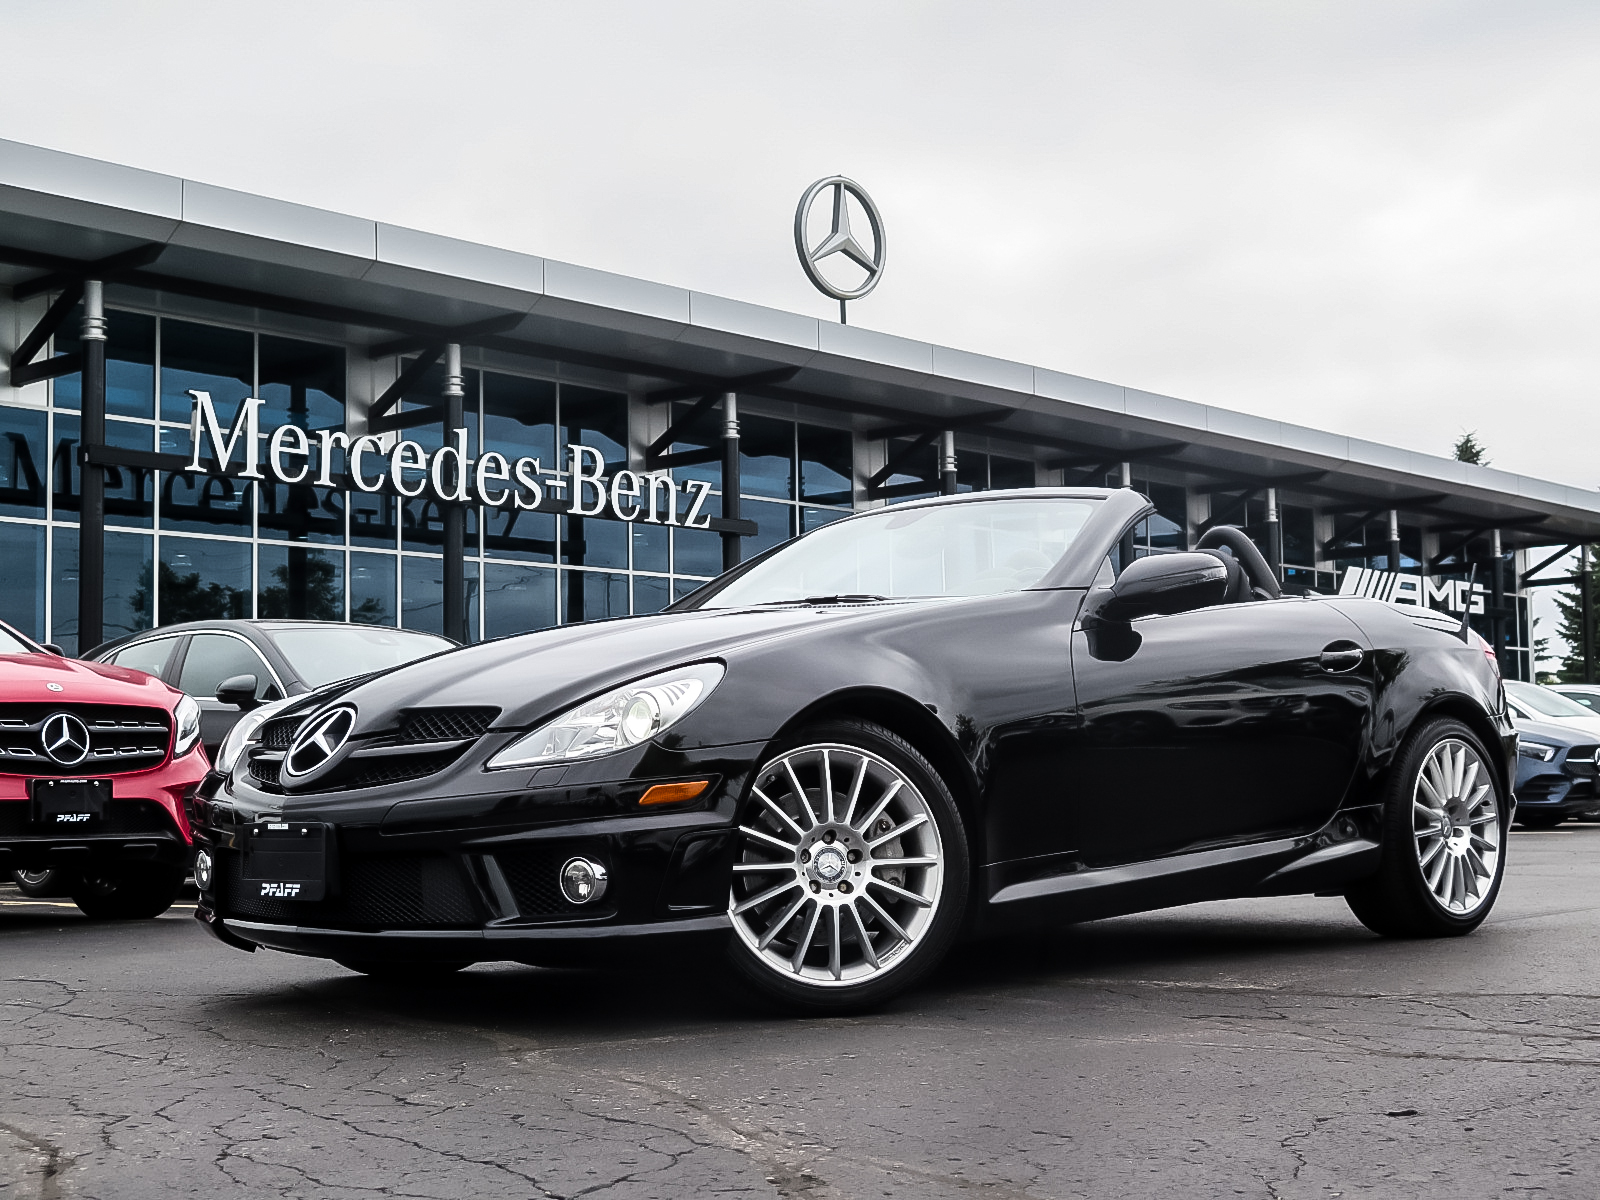 Pre-Owned 2011 Mercedes-Benz SLK350 Roadster